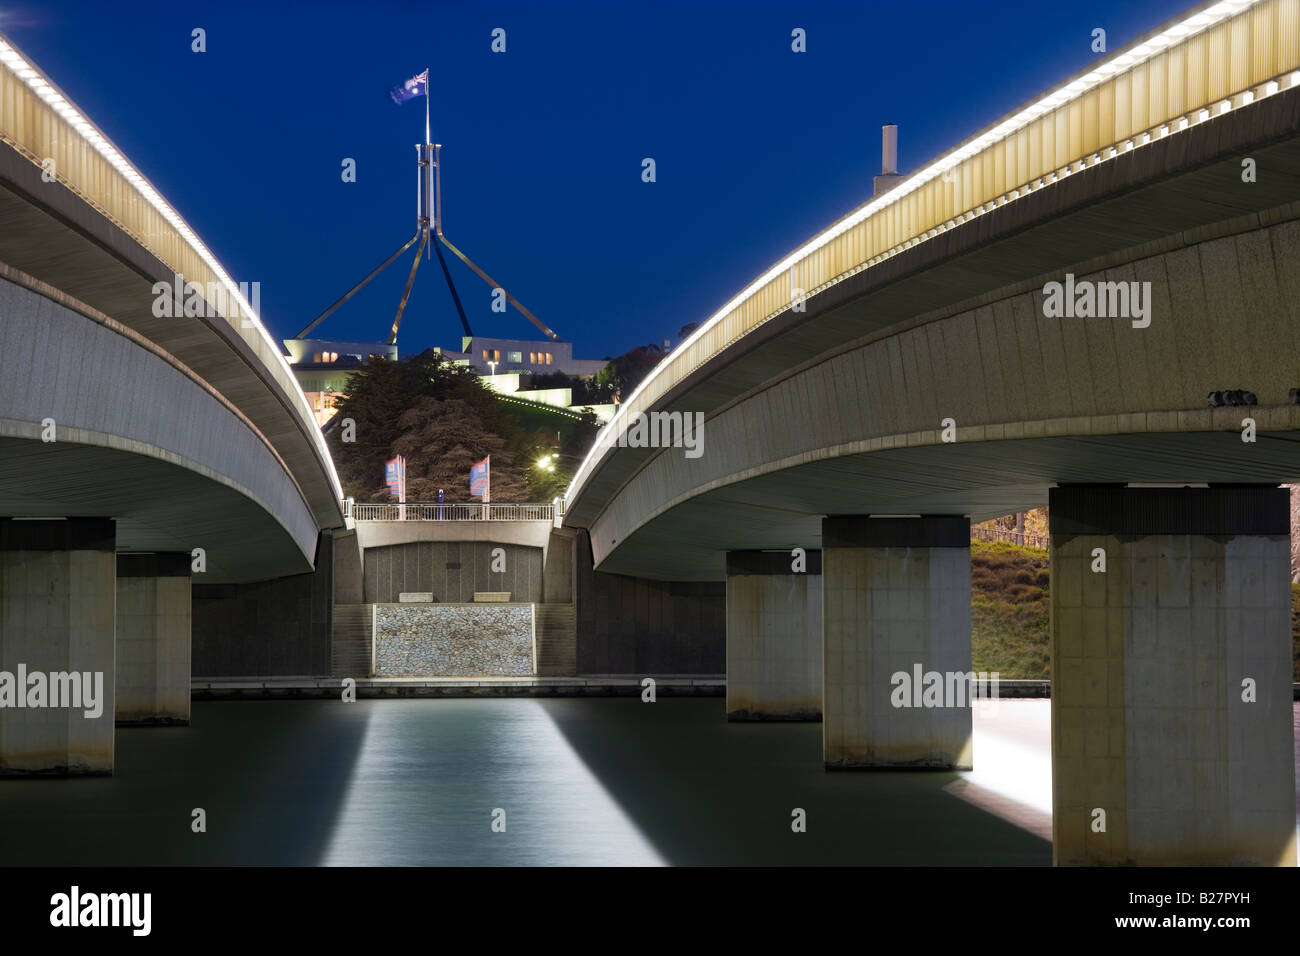 Australian Parliament House with Flagpole seen through Commonwealth Avenue Bridge over Lake Burley Griffin, Canberra. - Stock Image